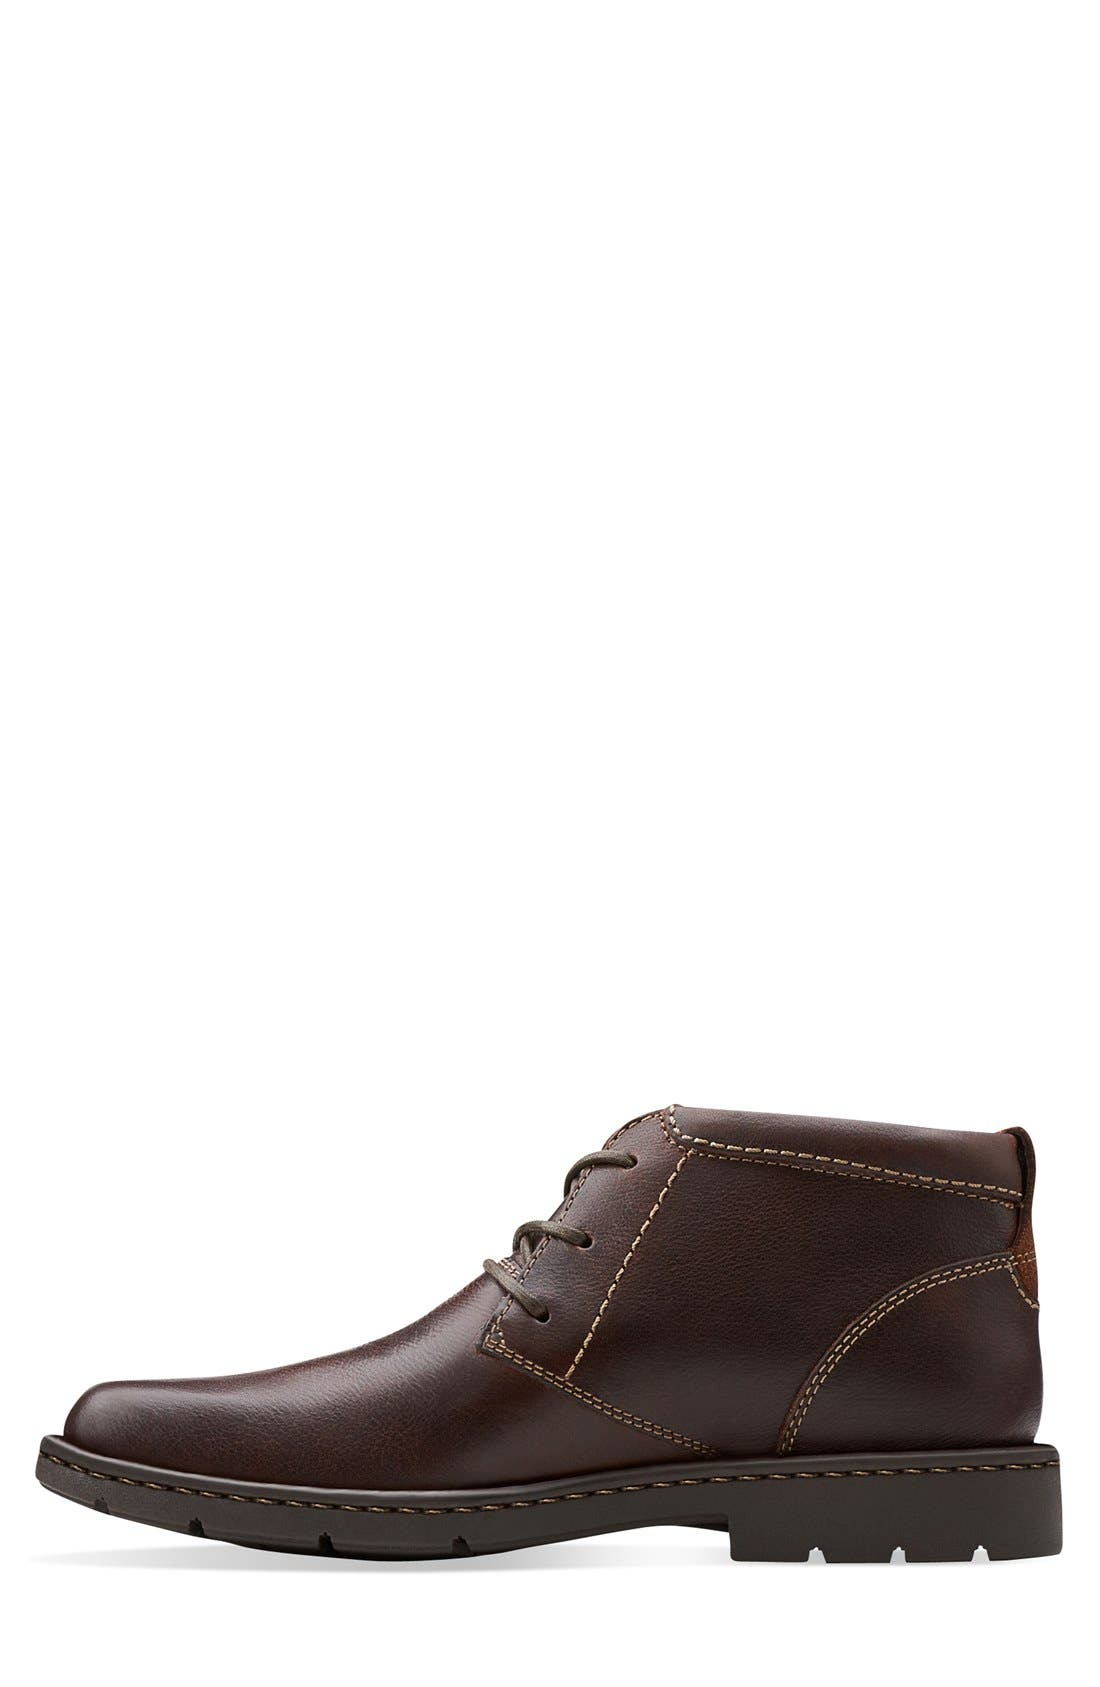 Alternate Image 2  - Clarks® 'Stratton - Limit' Plain Toe Boot (Men)